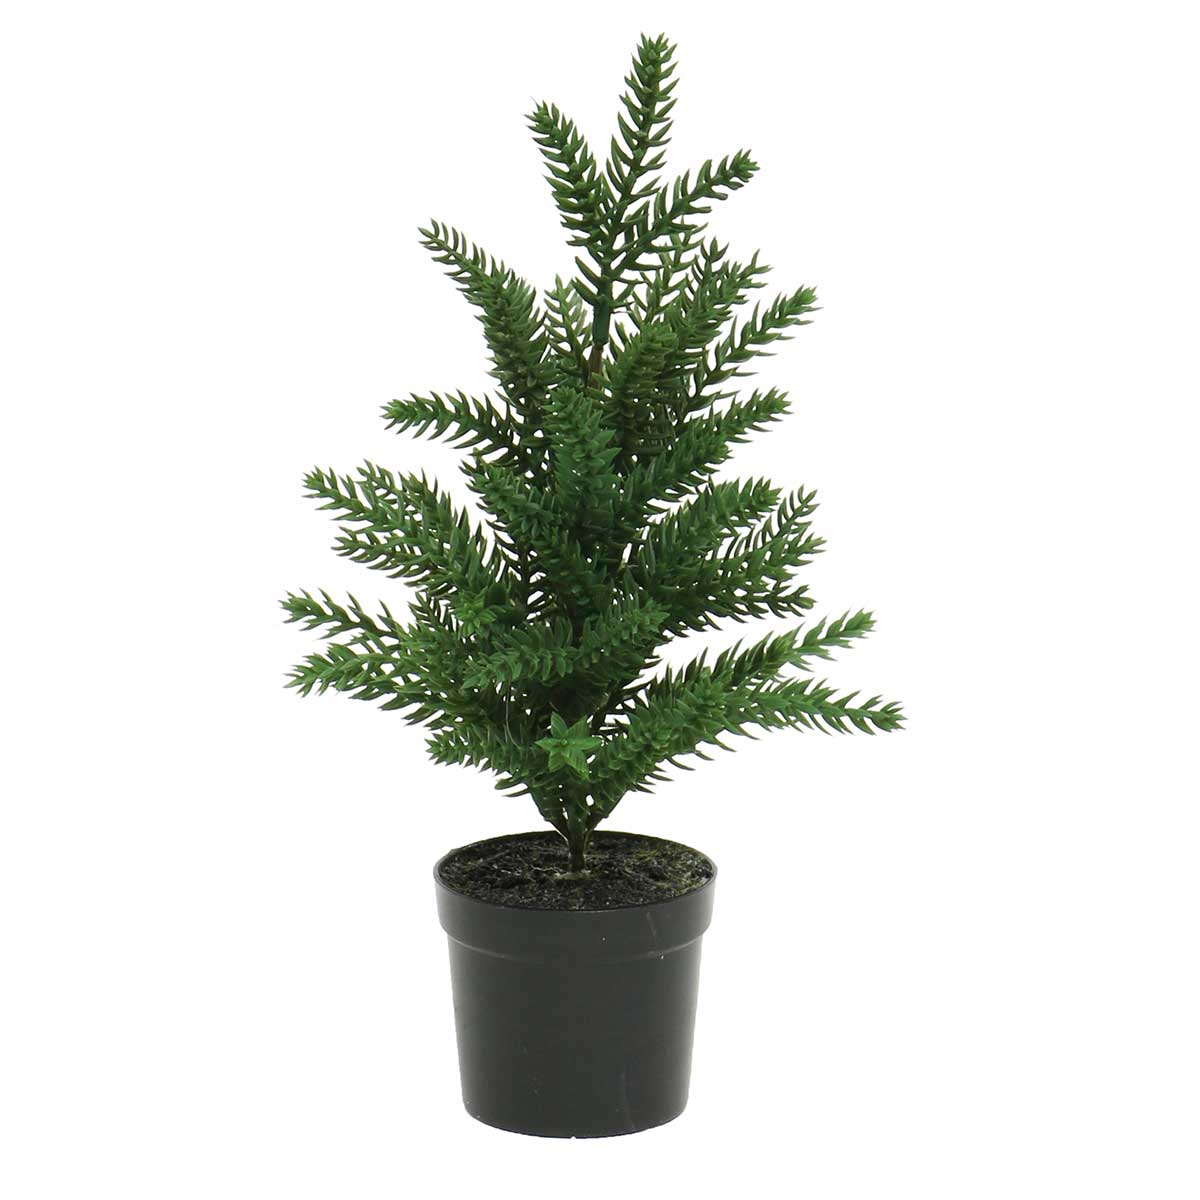 SPRUCE TREE IN BLACK POT